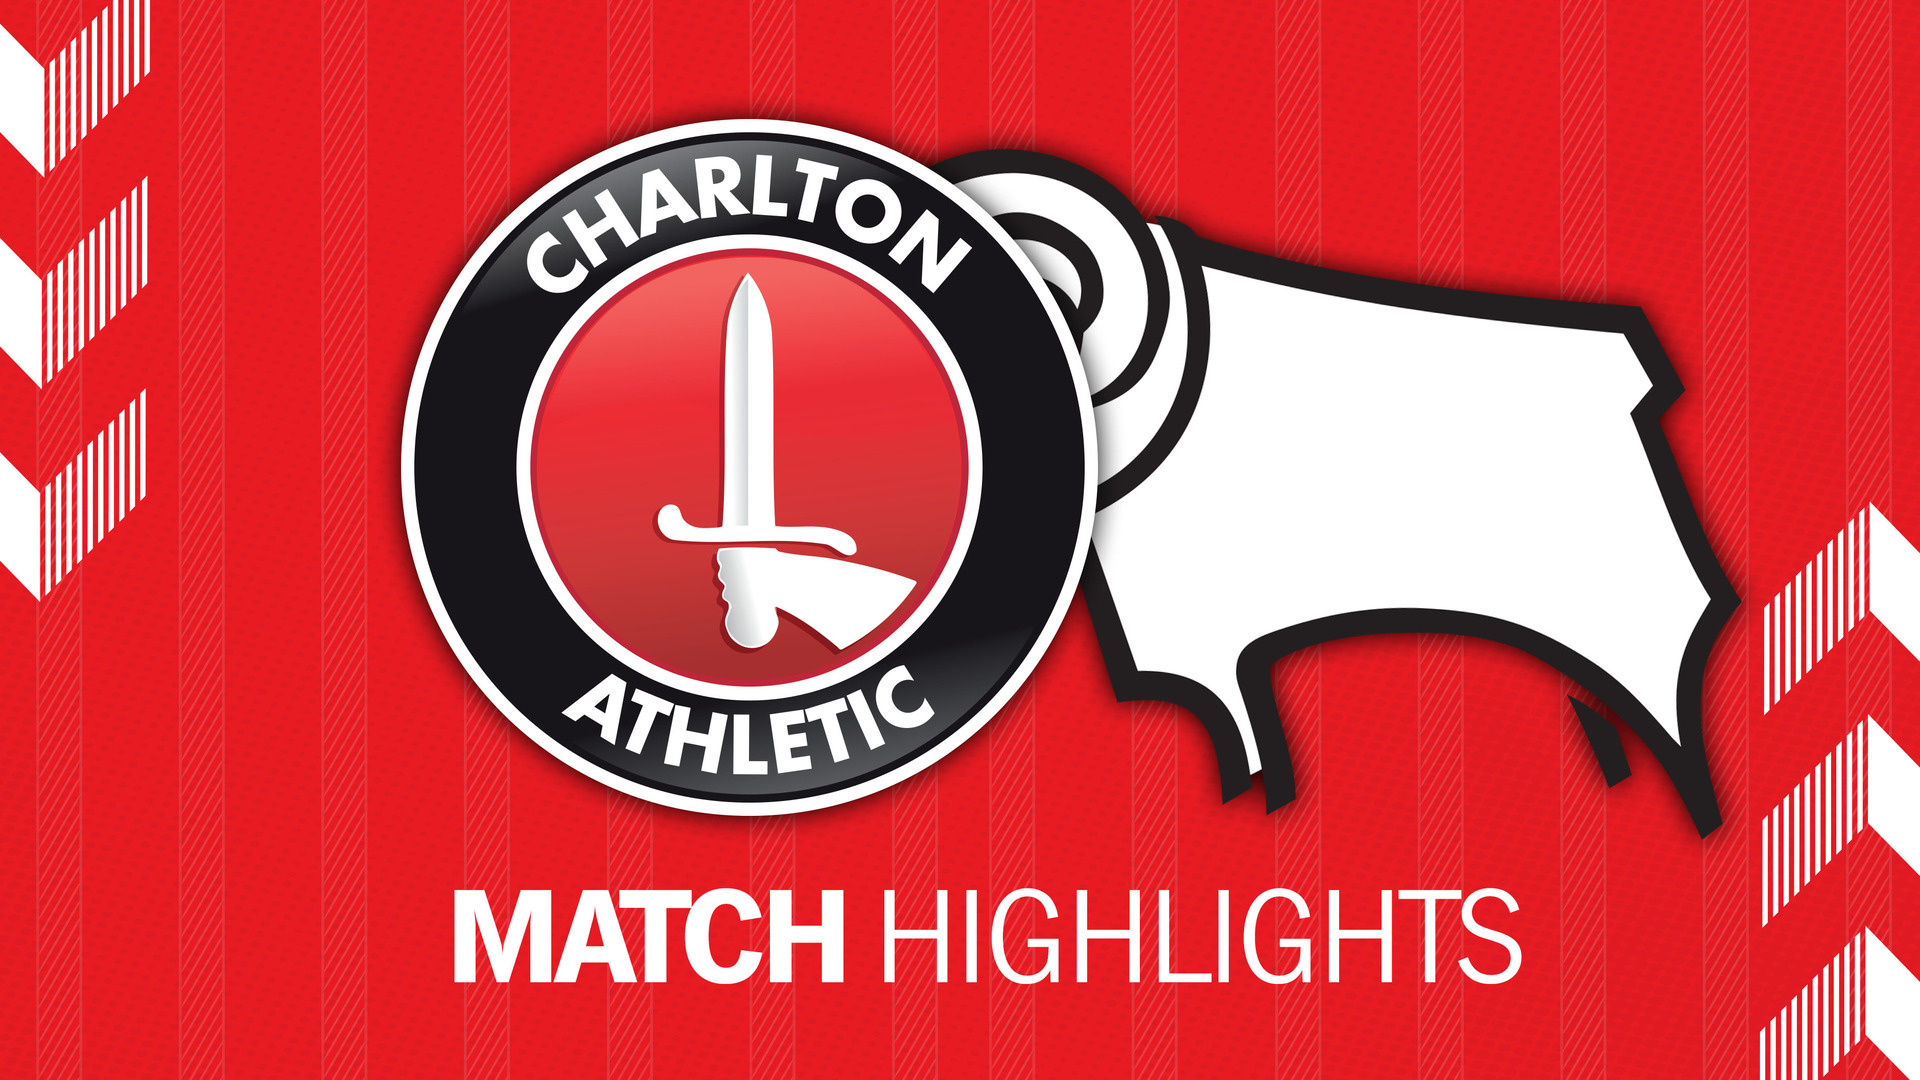 13 HIGHLIGHTS | Charlton 3 Derby County 0 (October 2019)